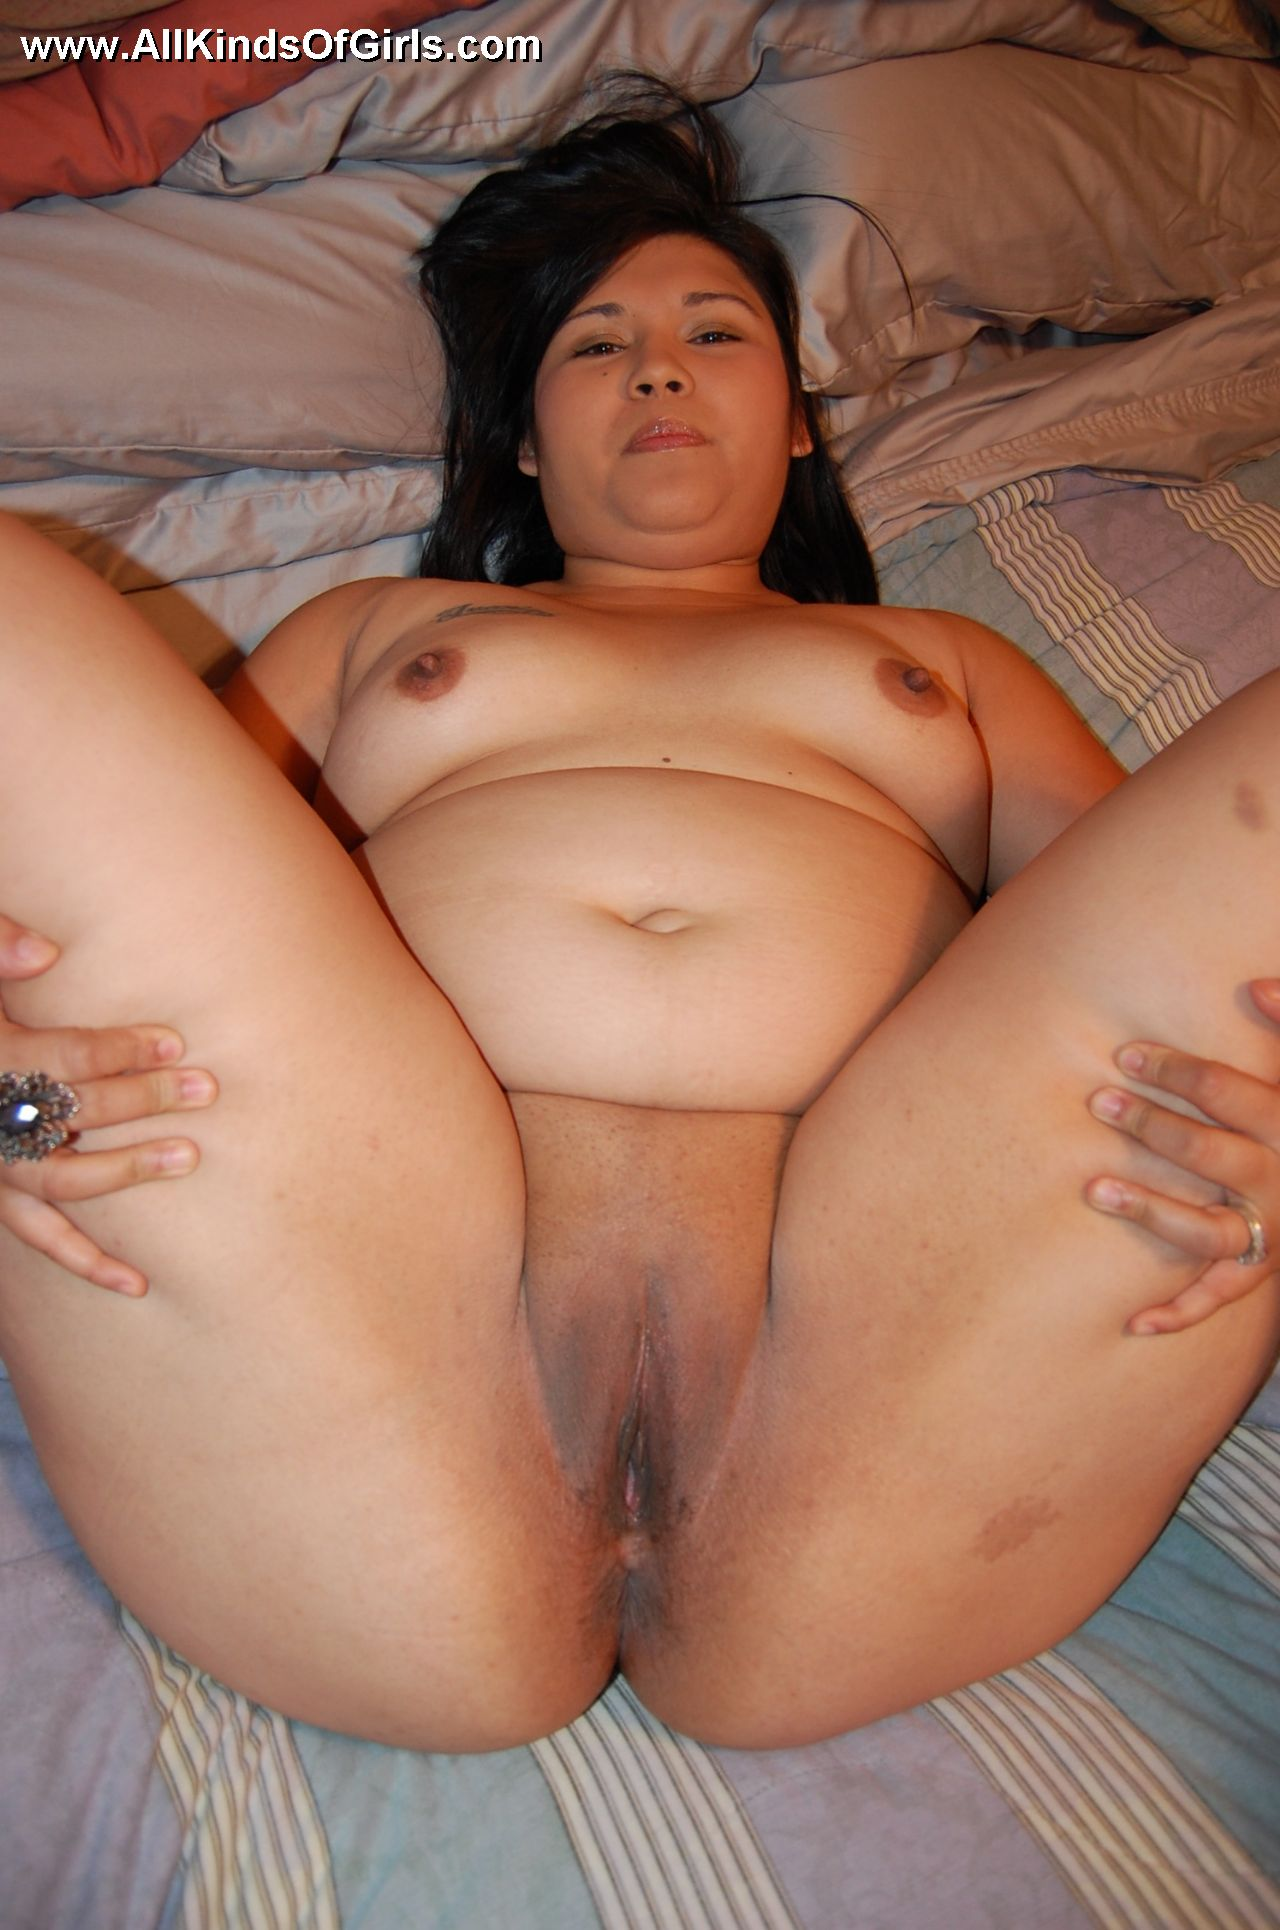 Bbw fat pussy spread great Fake